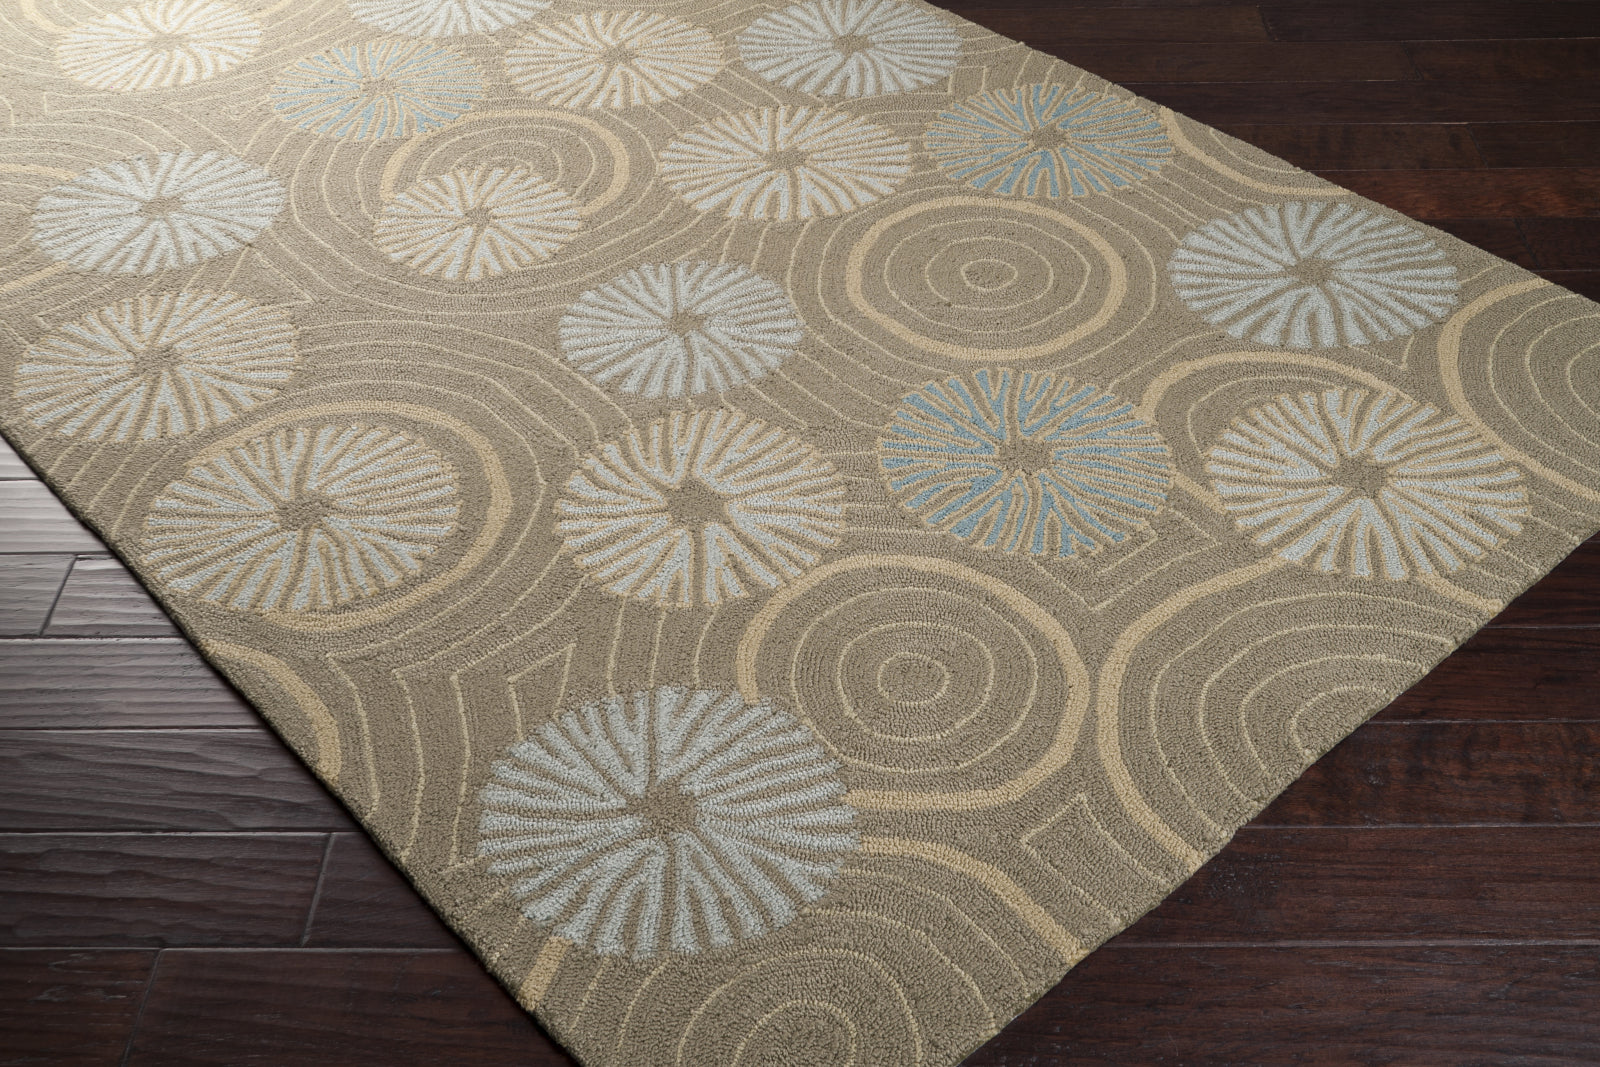 Surya Labyrinth LBR-1002 Area Rug by Julie Cohn main image